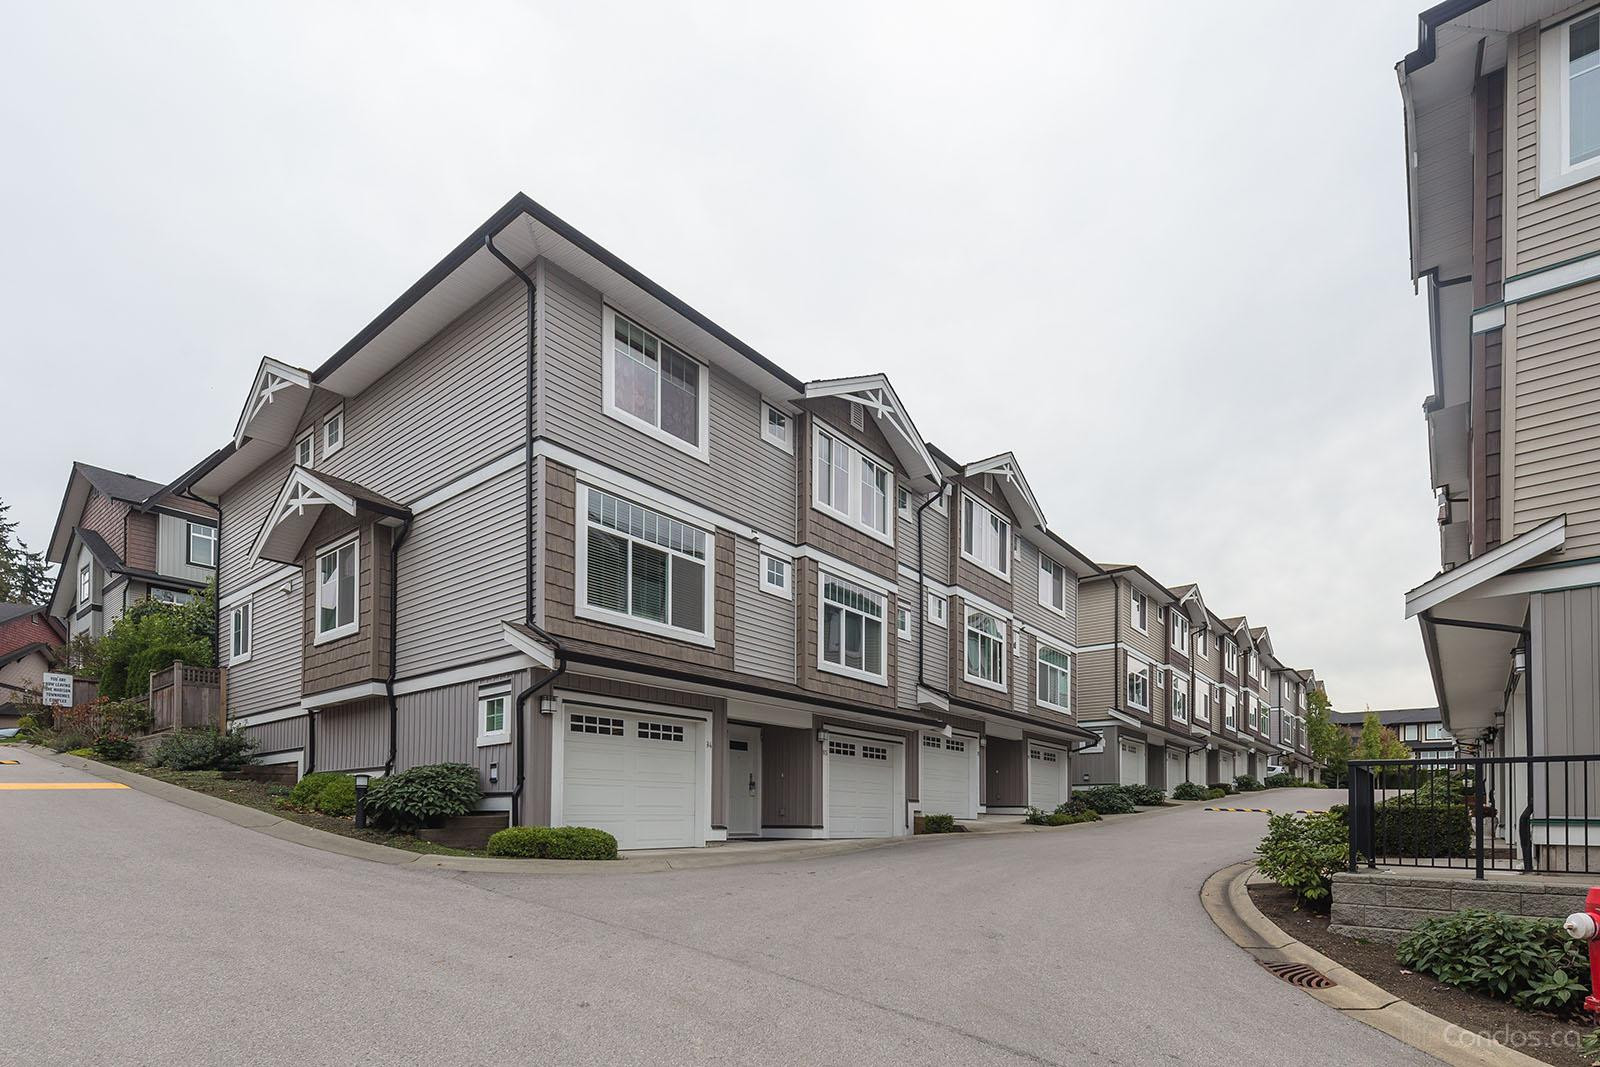 Madison at 14356 63A Ave, Surrey 1